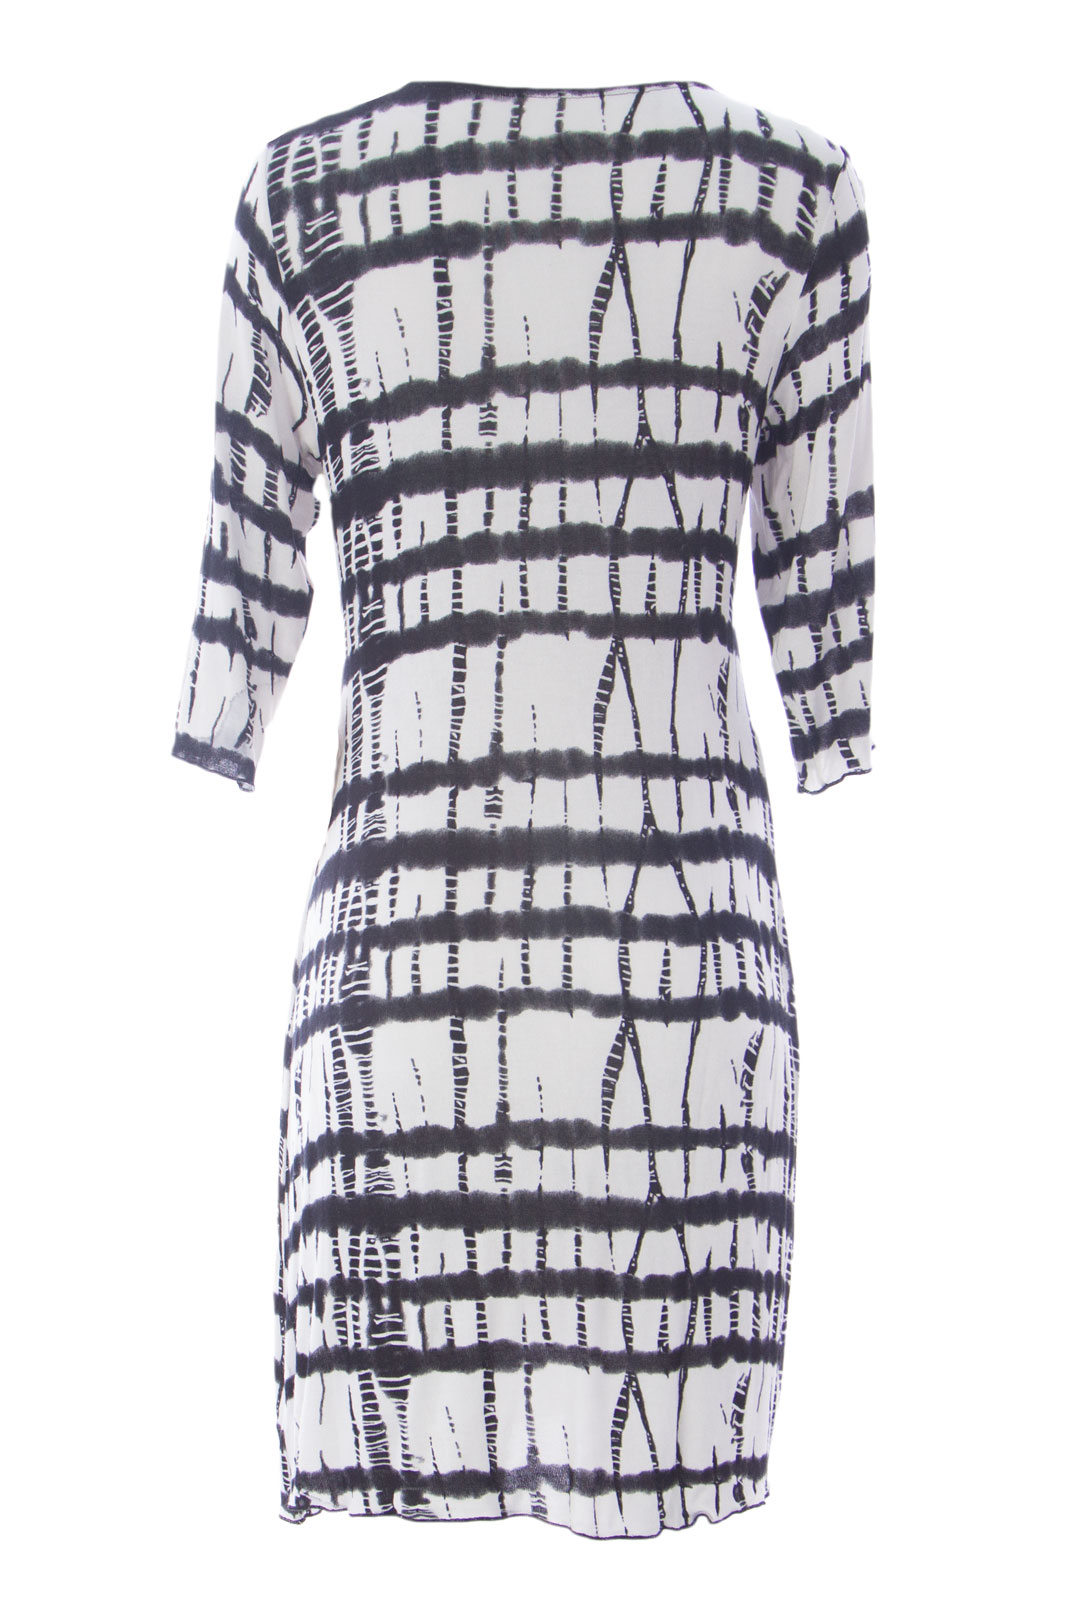 By Pullover Marilyn Damen 4 Kleid Nwt Miraclesuit Miraclebody 3 ZwqnPxfOn